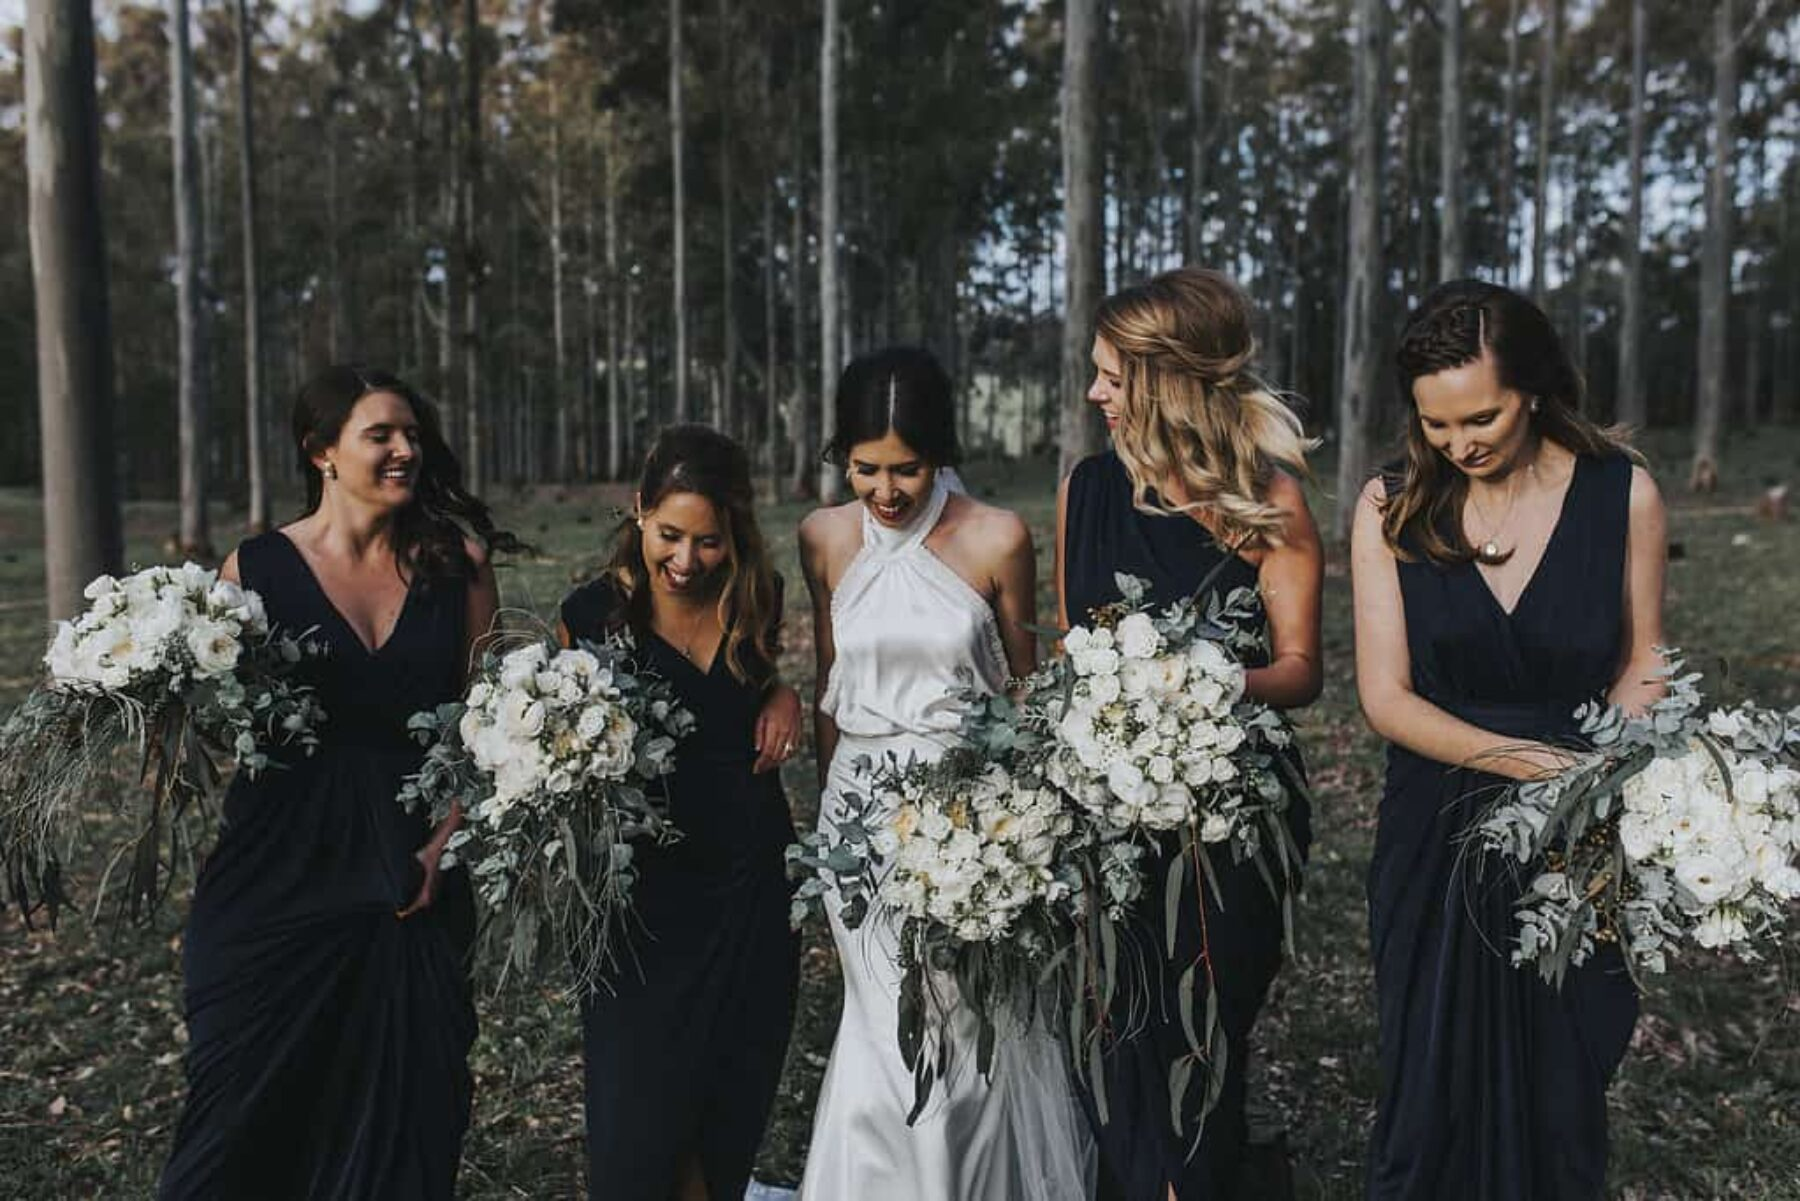 navy bridesmaids with green and white bouquets